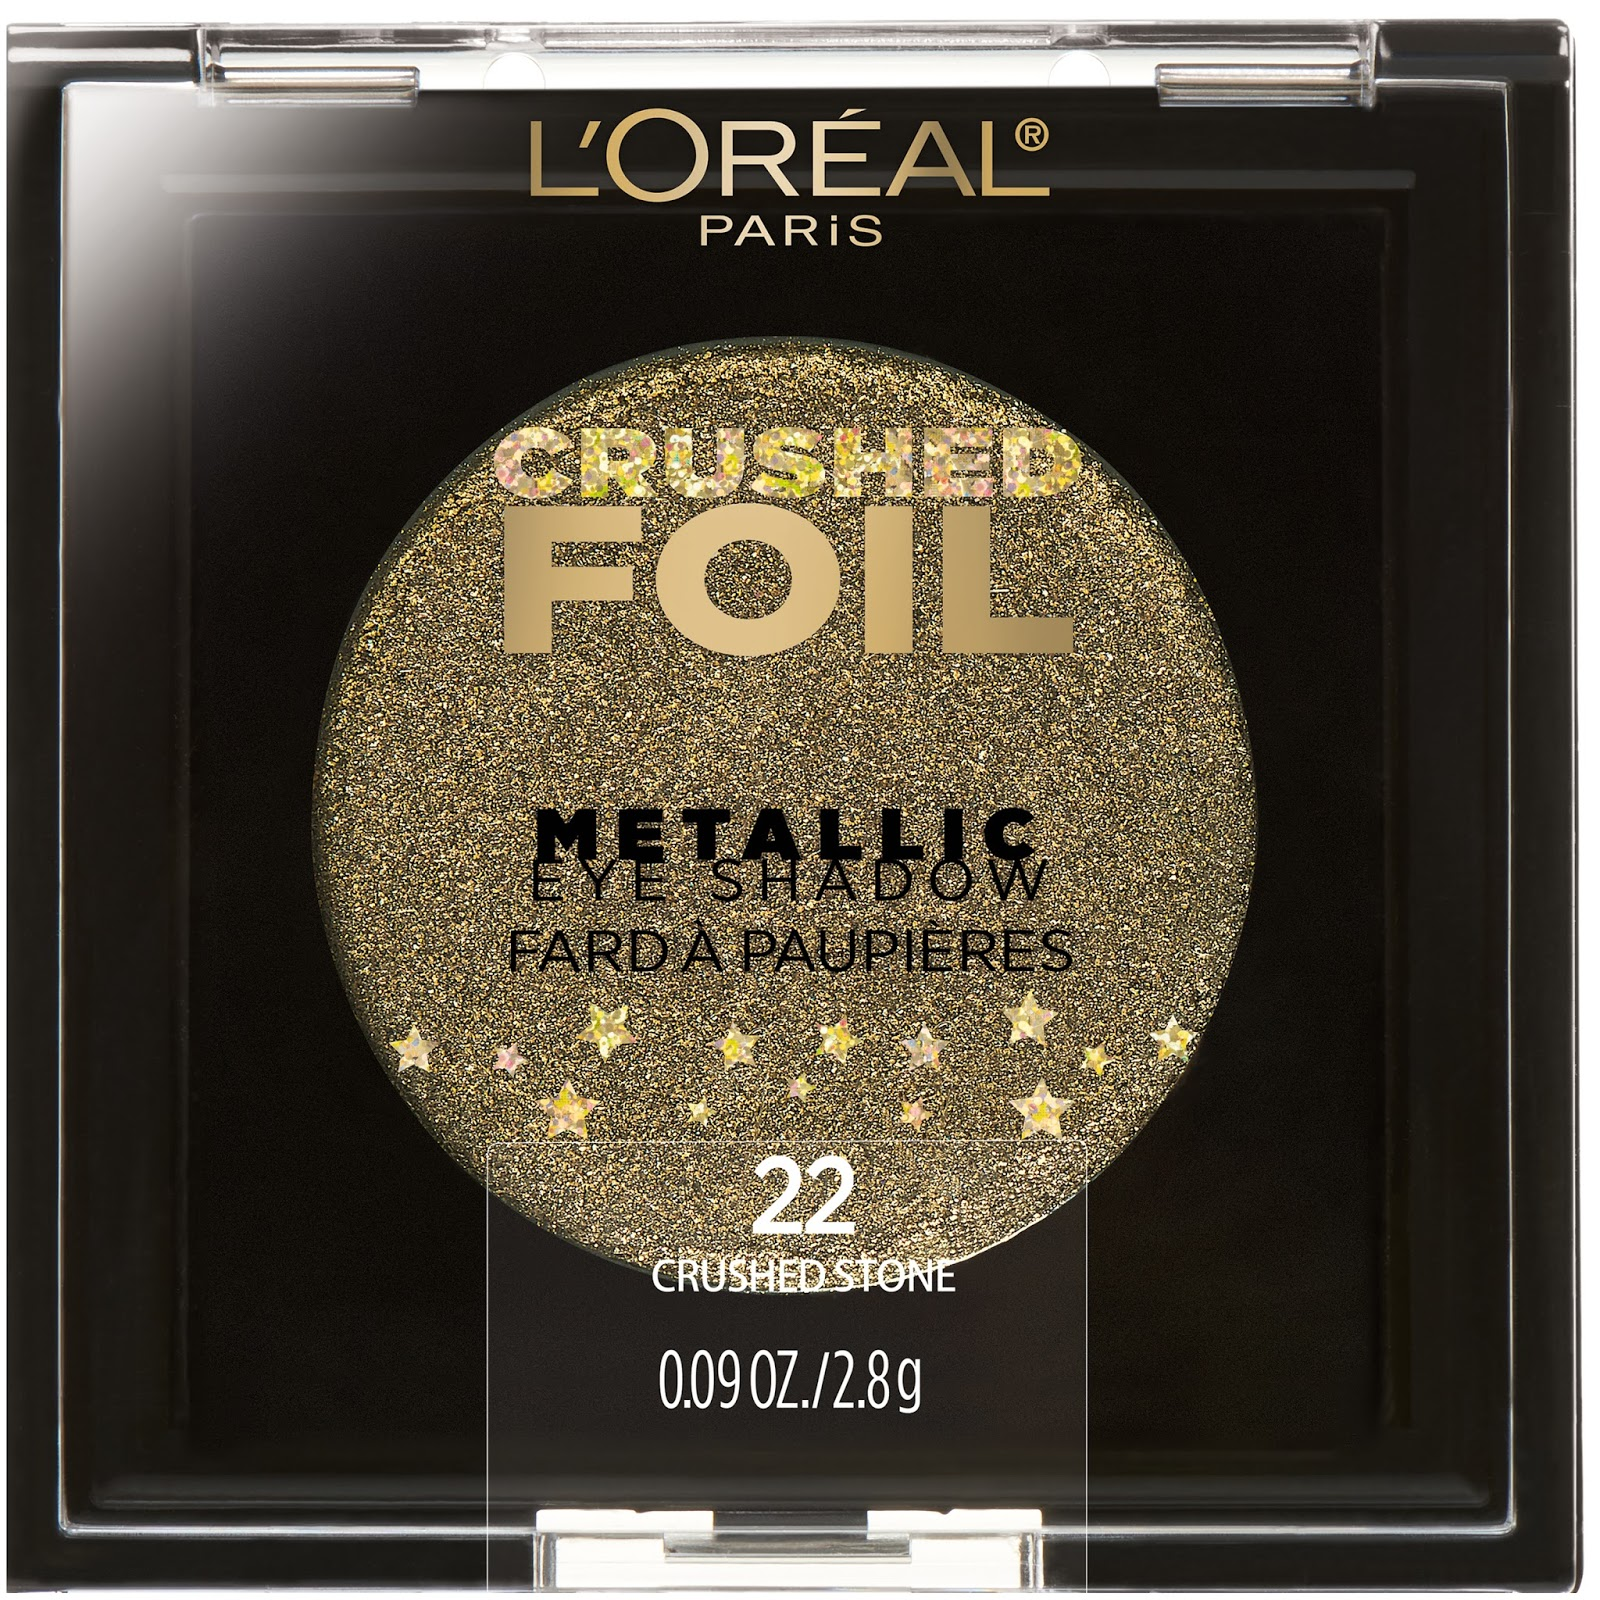 Loral introduces the crushed foils collection available loral introduces the crushed foils collection available exclusively at walmart loreal lorealparis crushedfoilscollection malvernweather Image collections